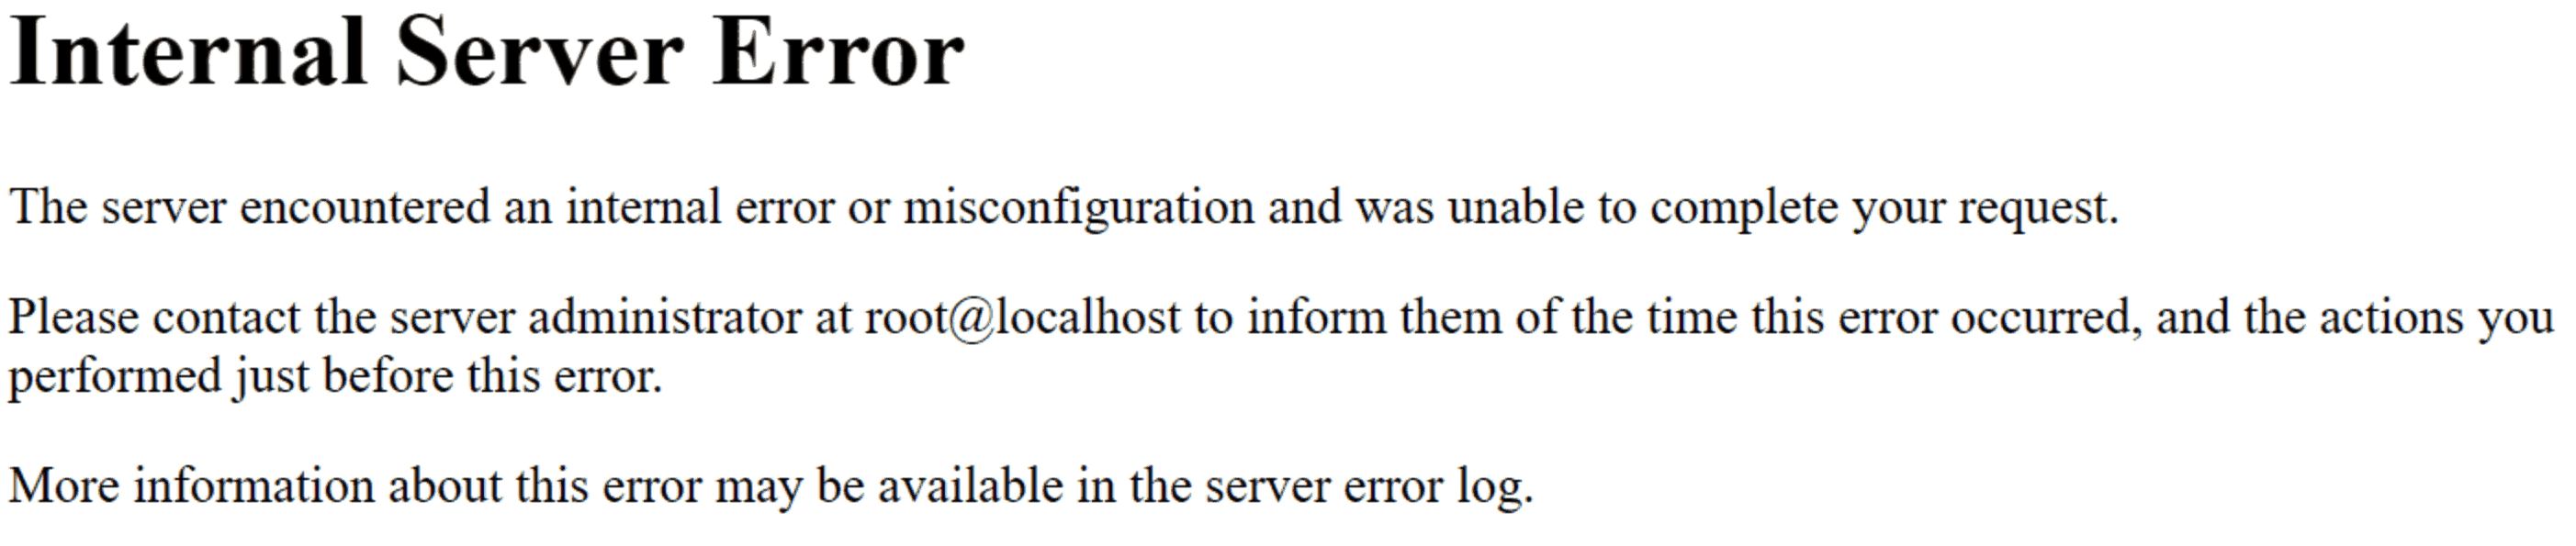 The Internal Server Error message.